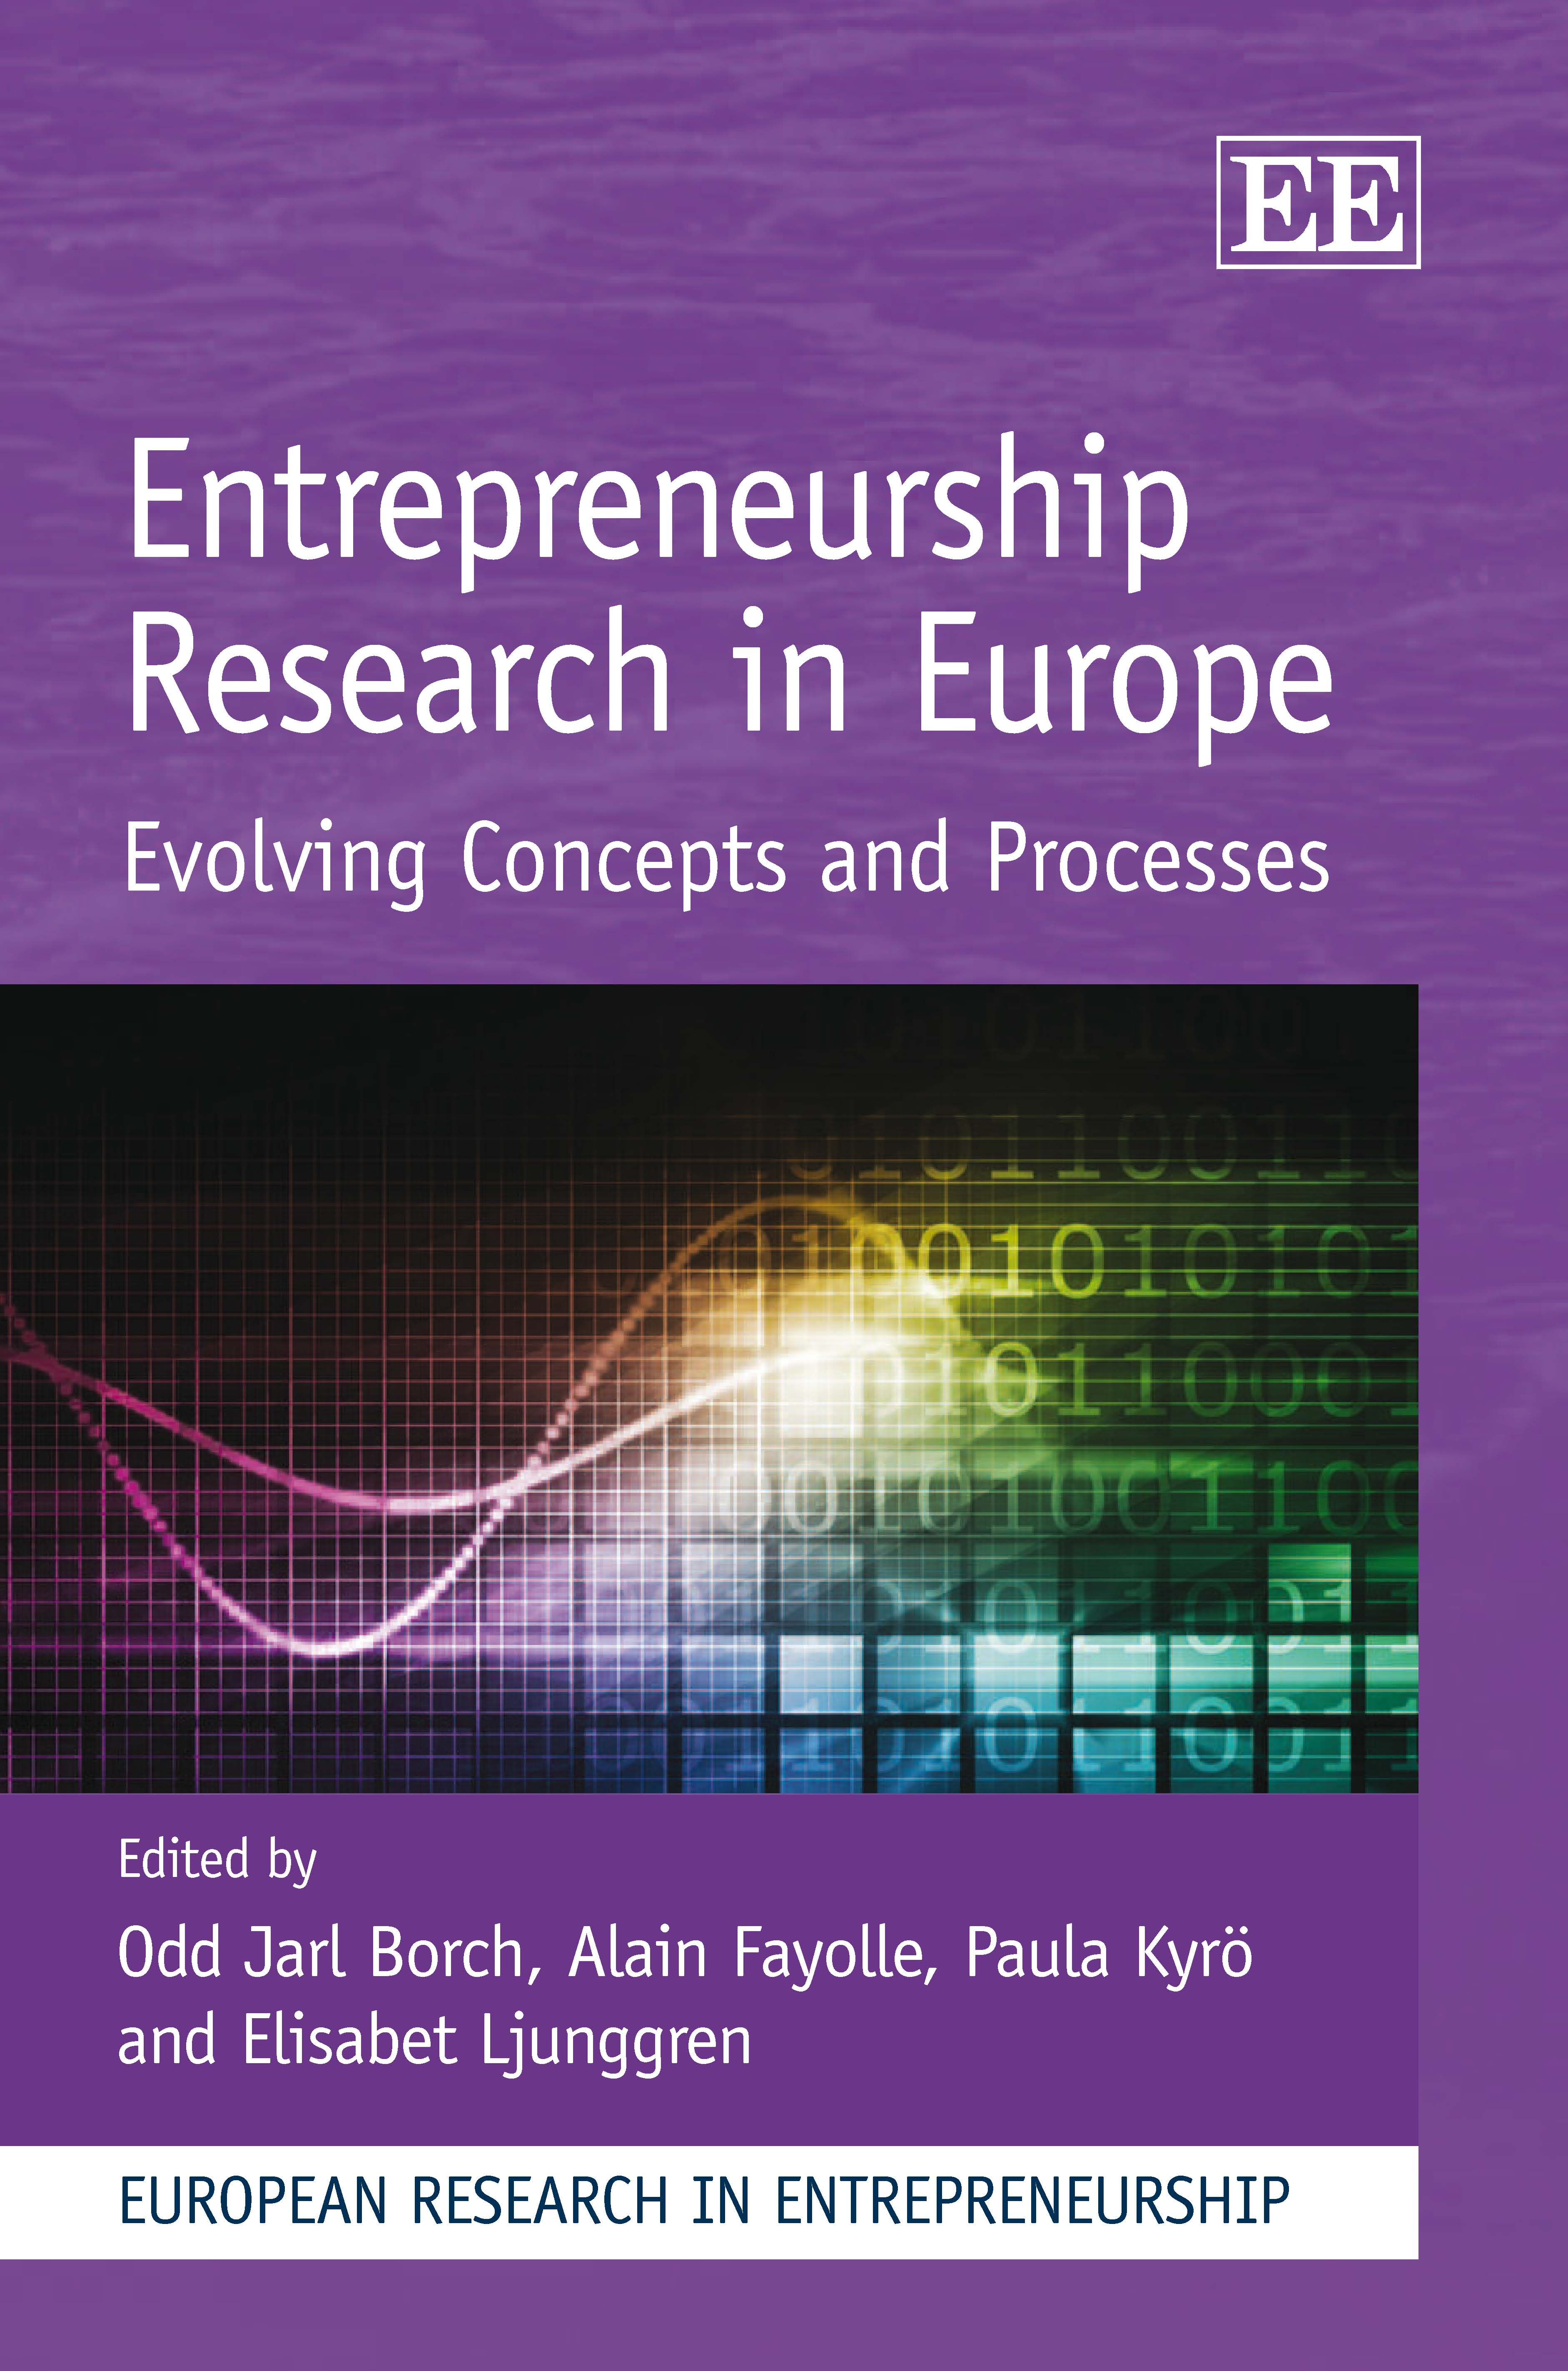 Entrepreneurship Research in Europe